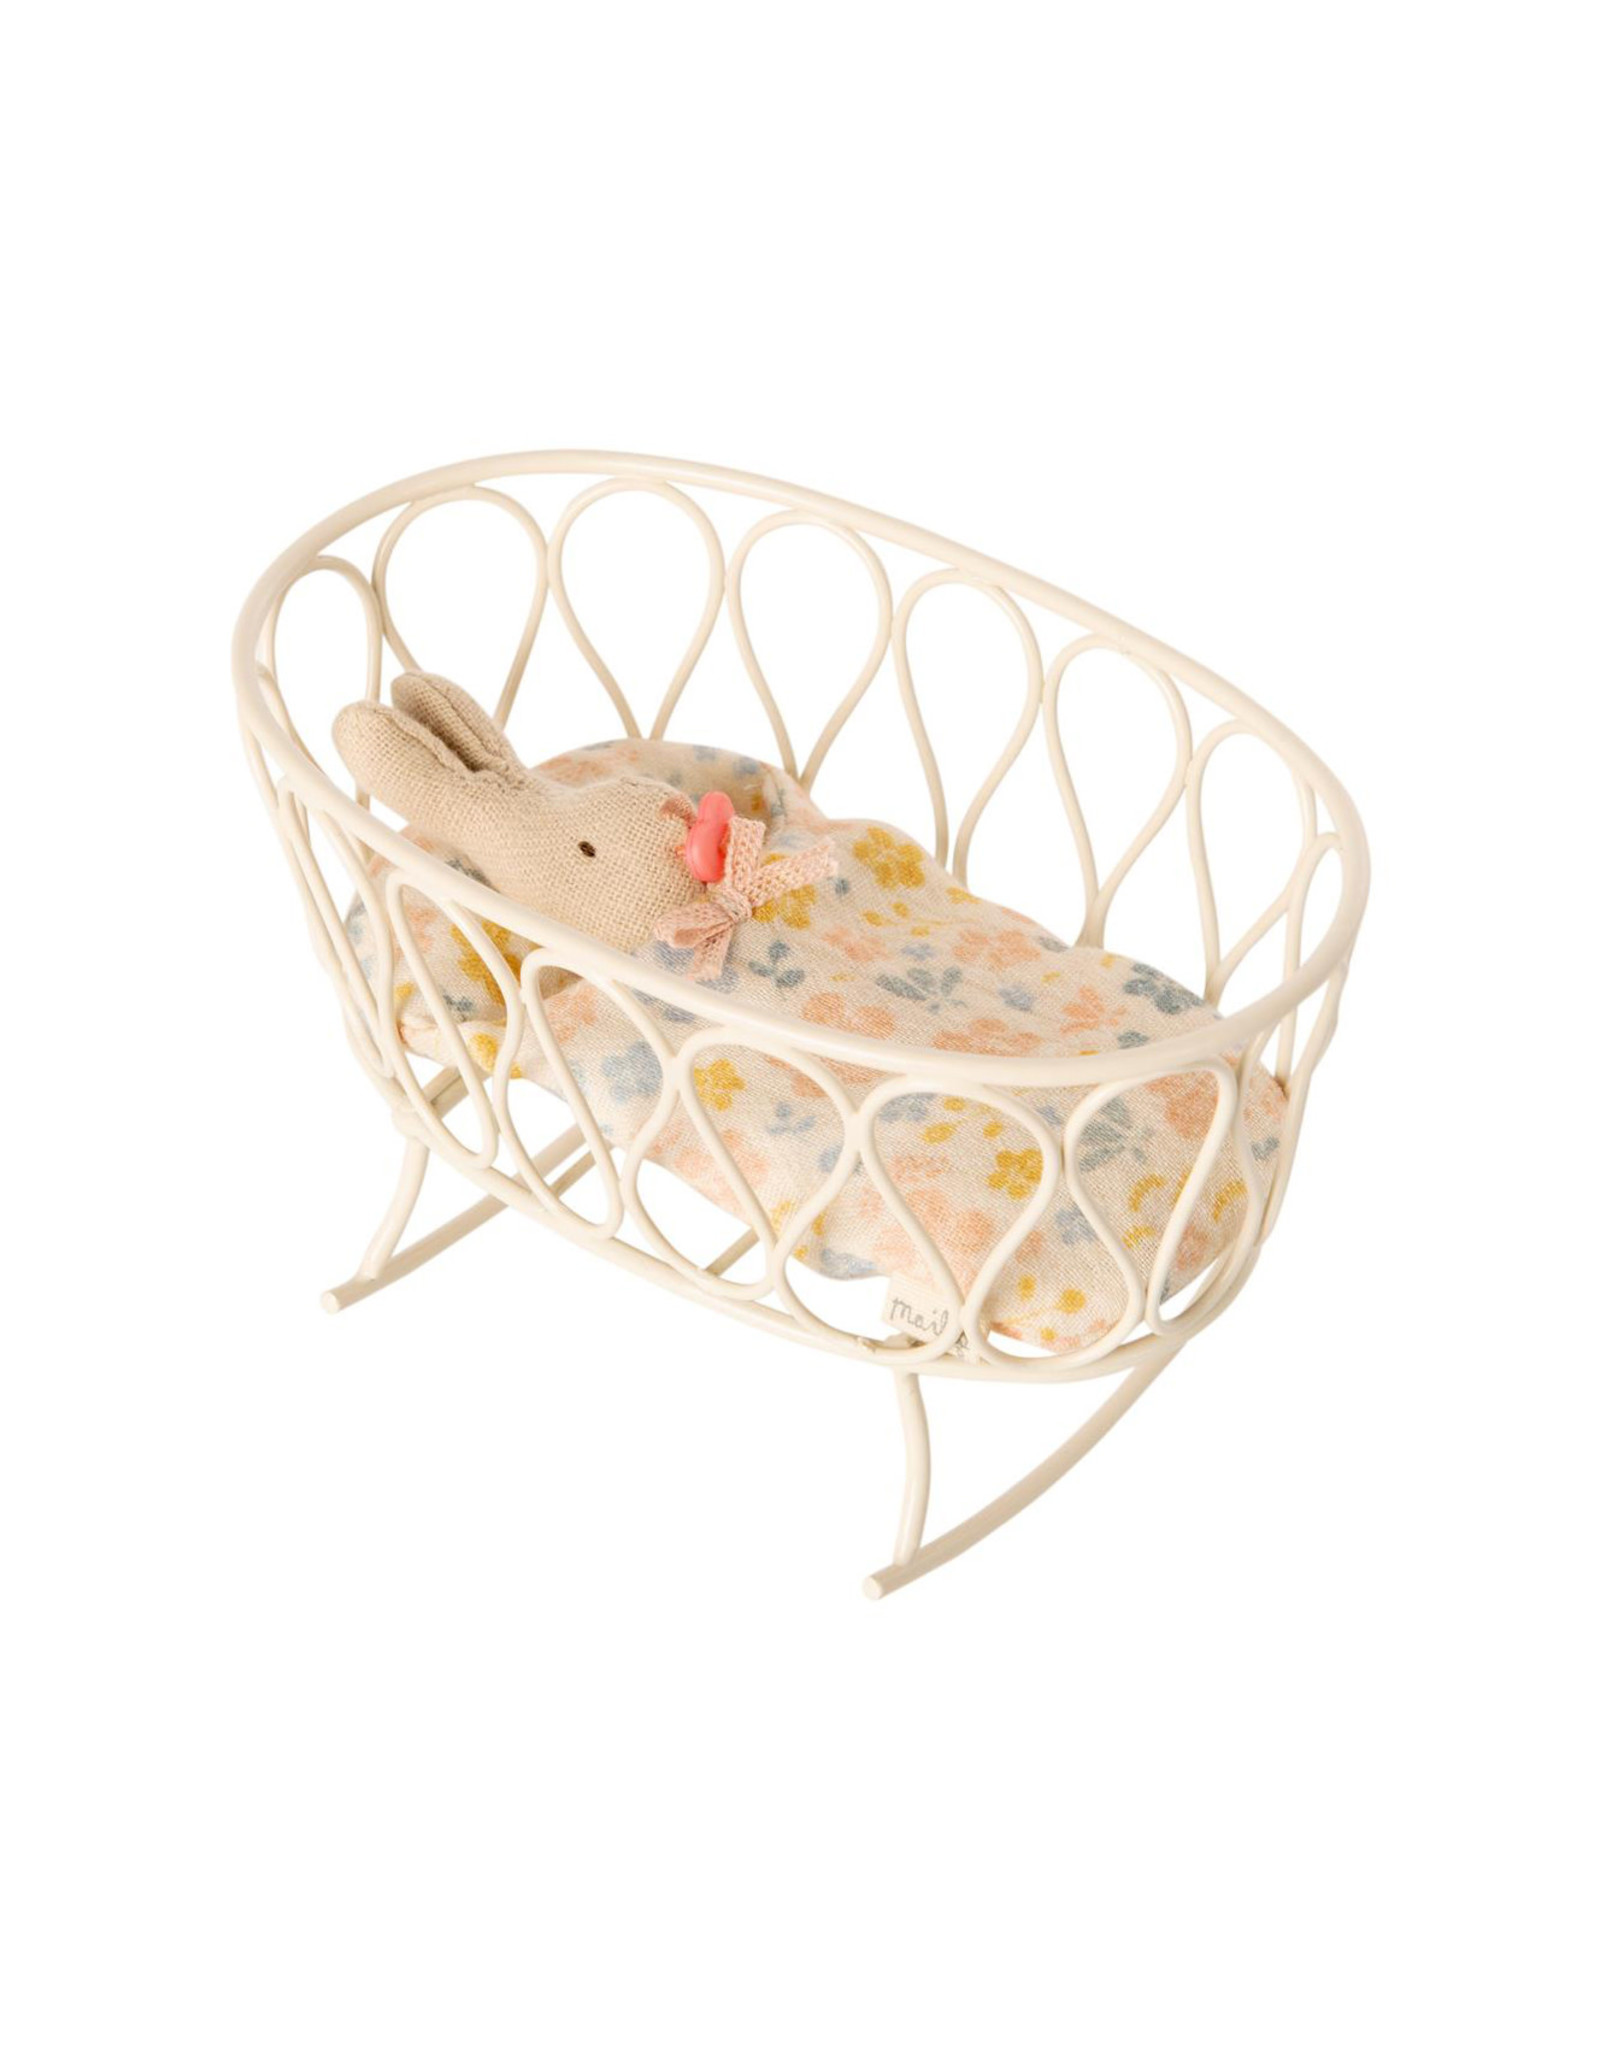 Maileg Mouse Cradle with Sleeping Bag - Off White